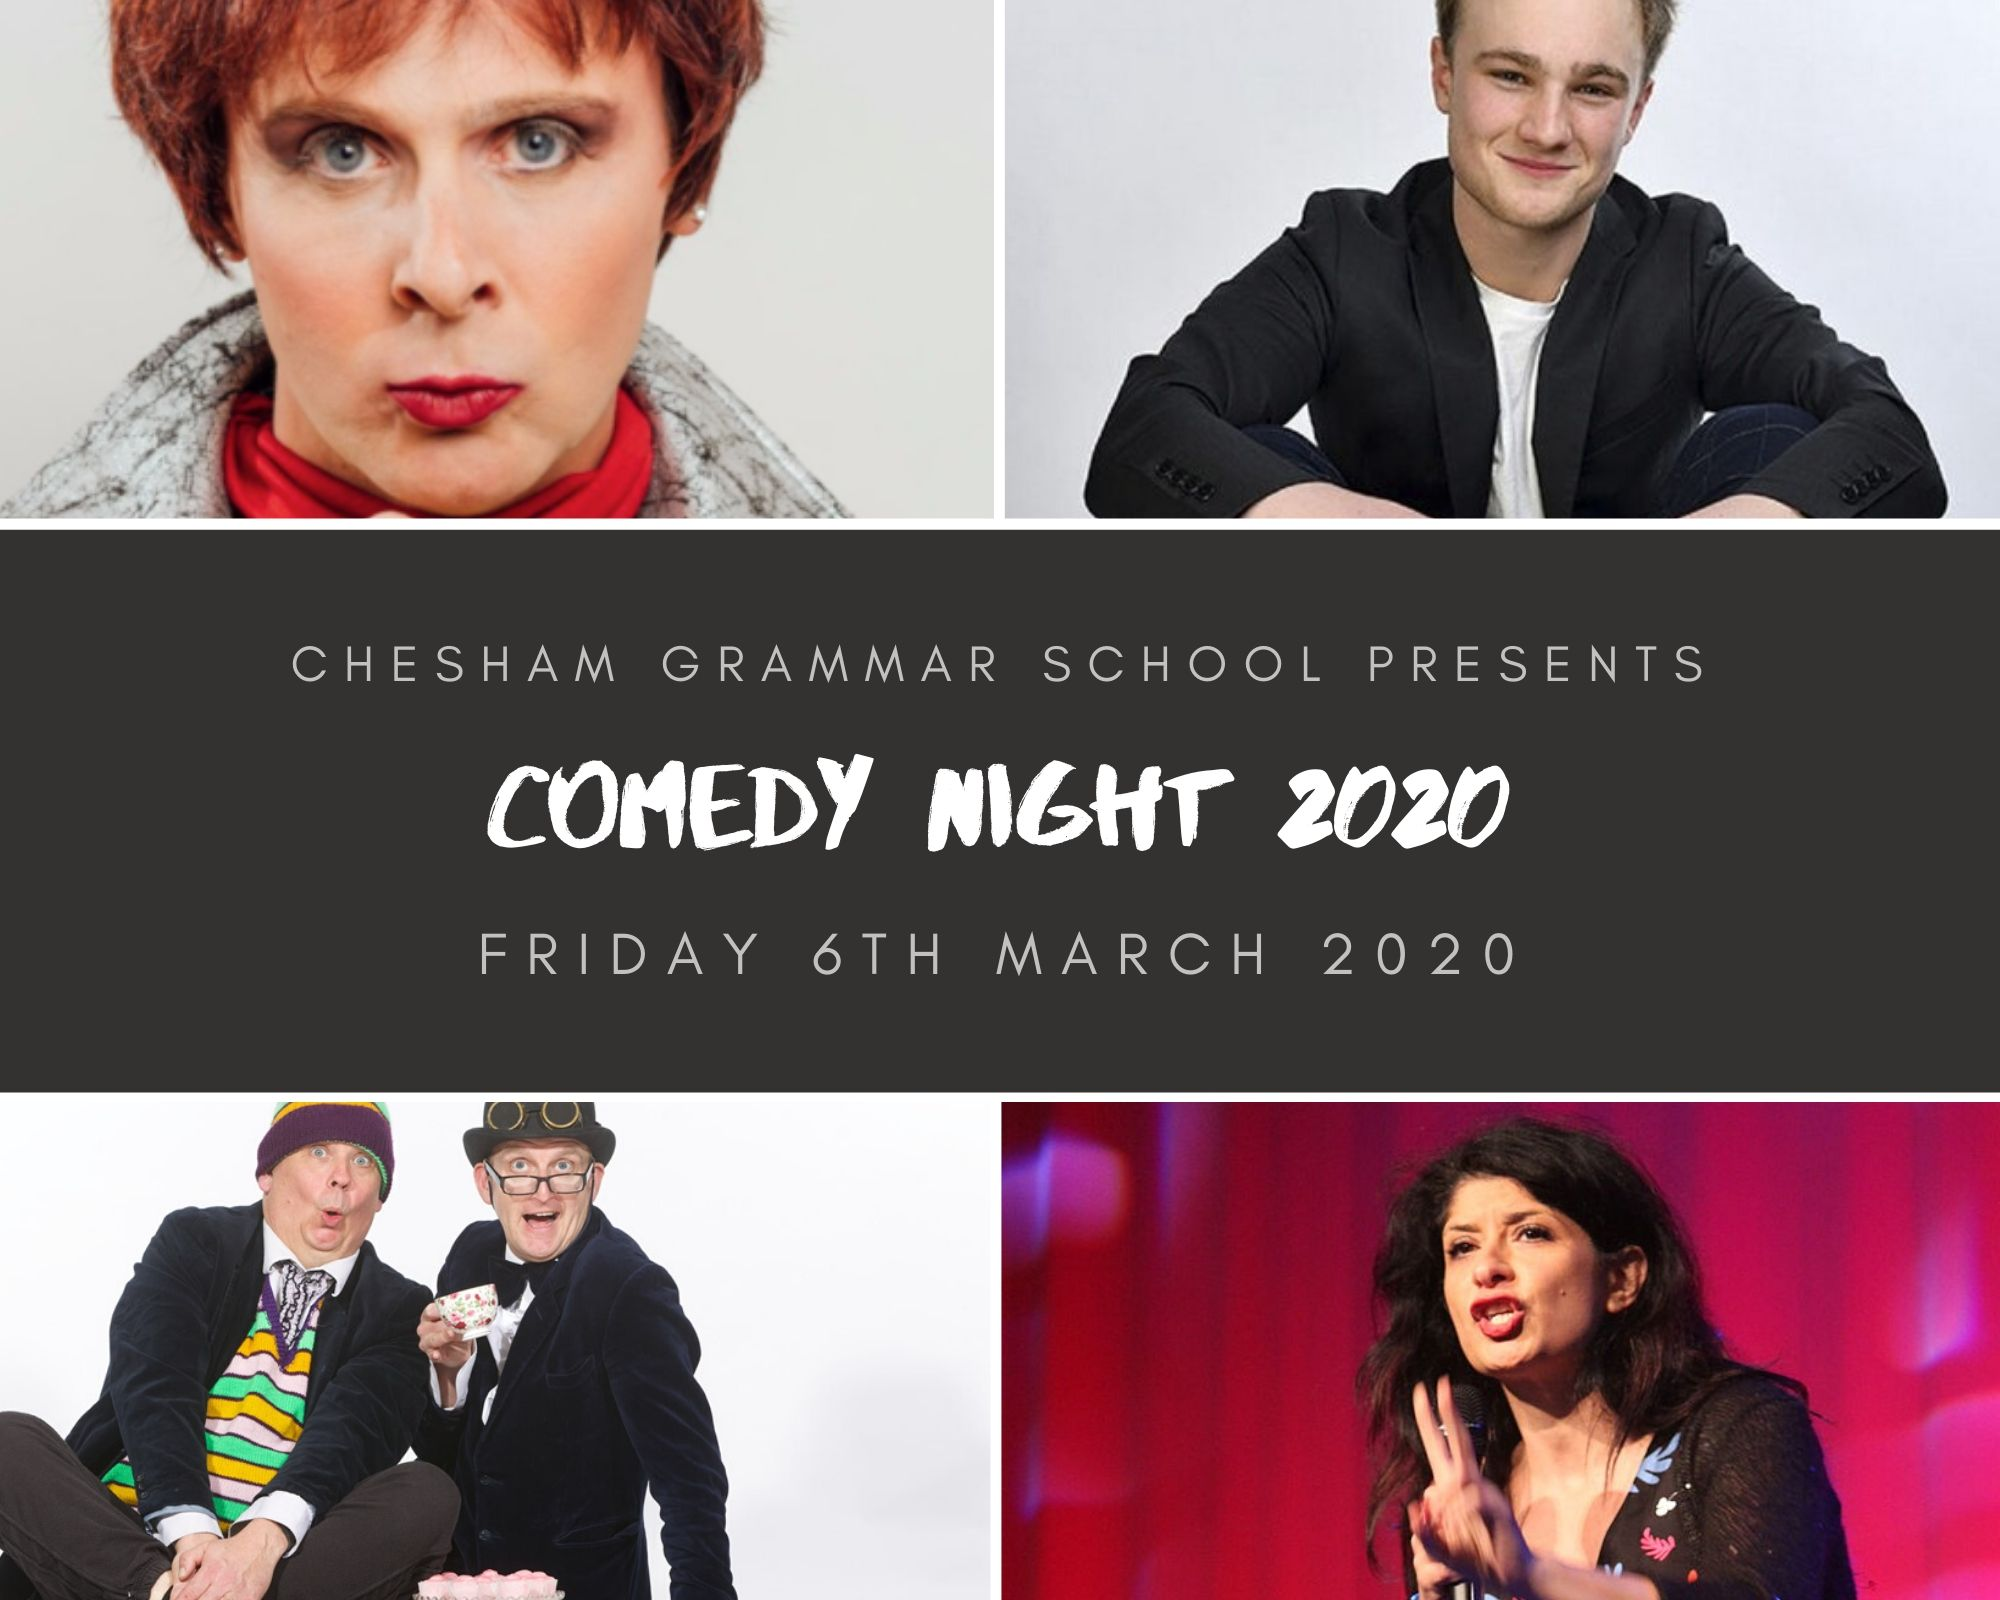 Comedy Night at Chesham Grammar School